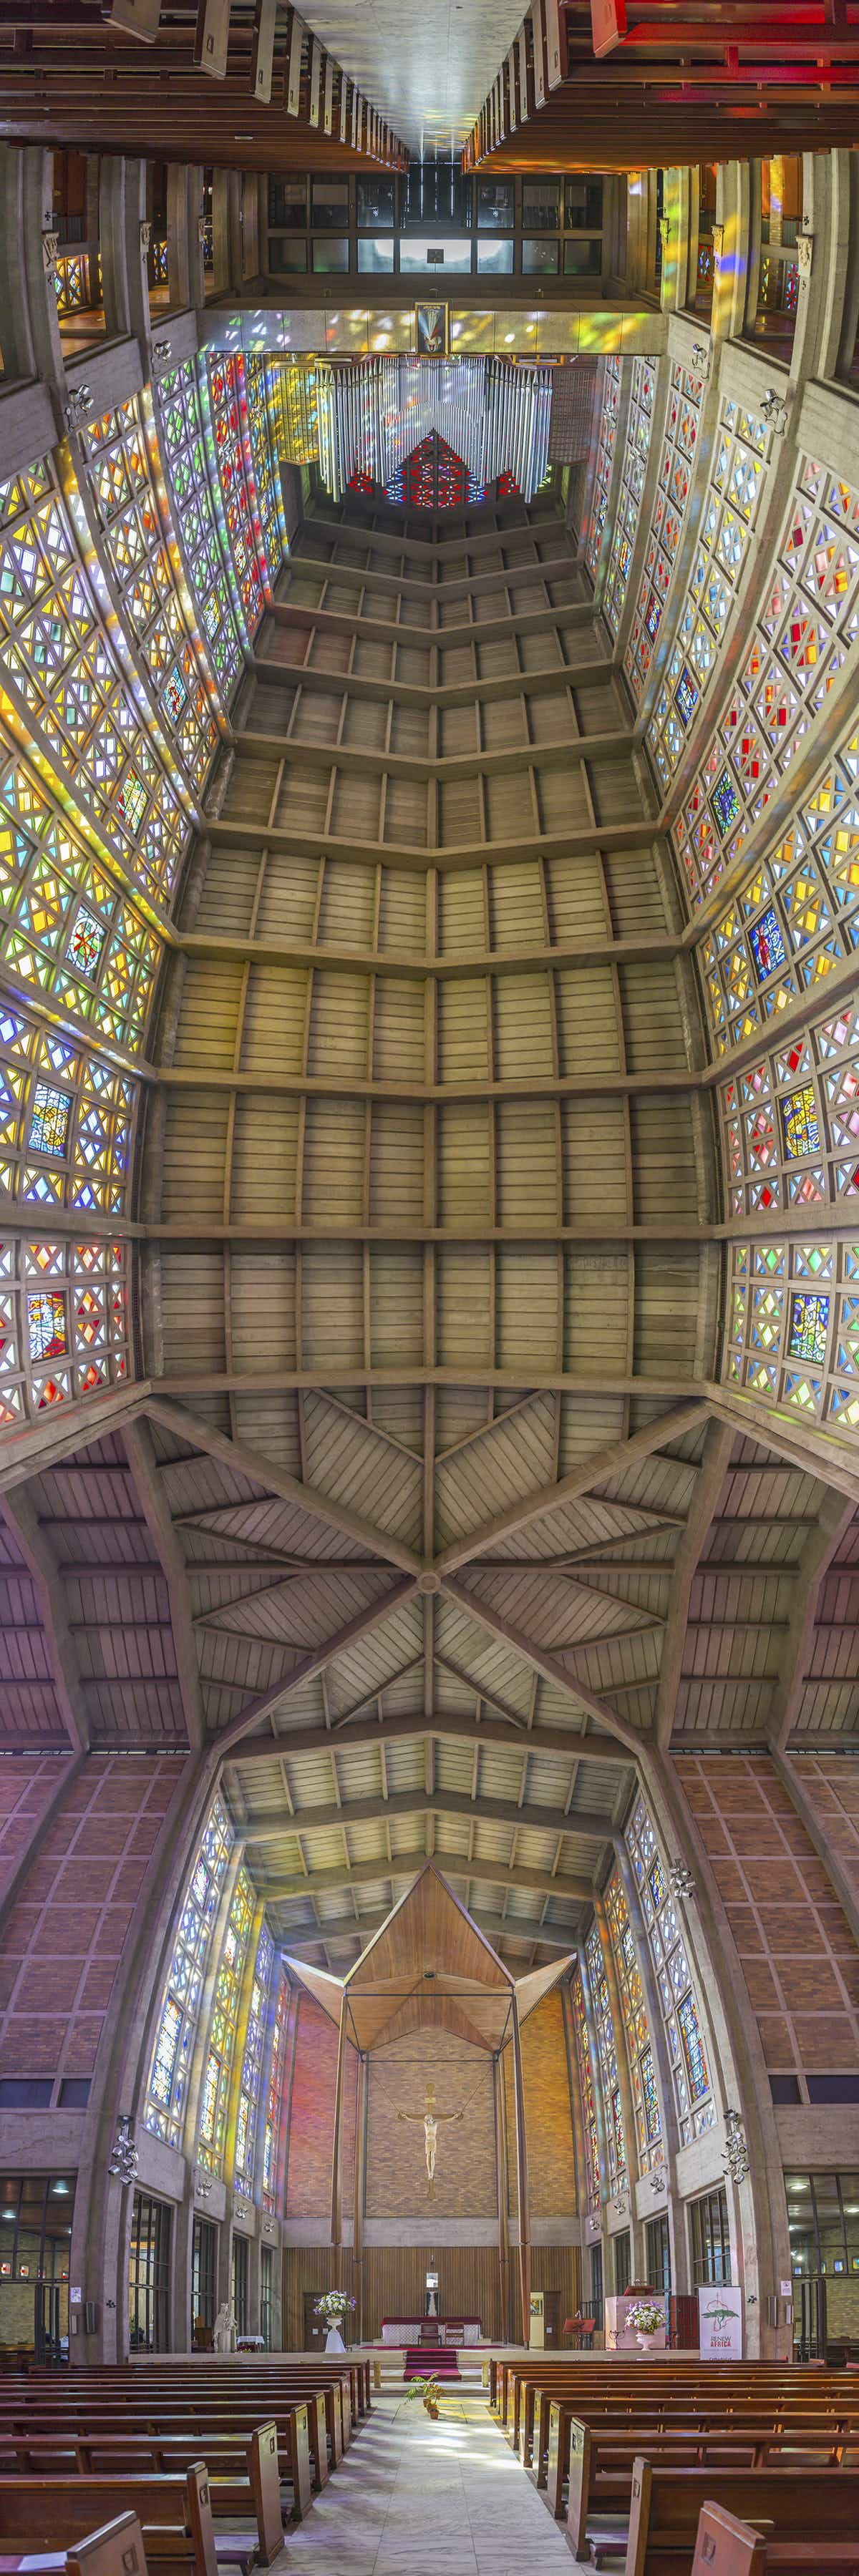 See the world's magnificent cathedrals in their entirety with this panoramic photo series